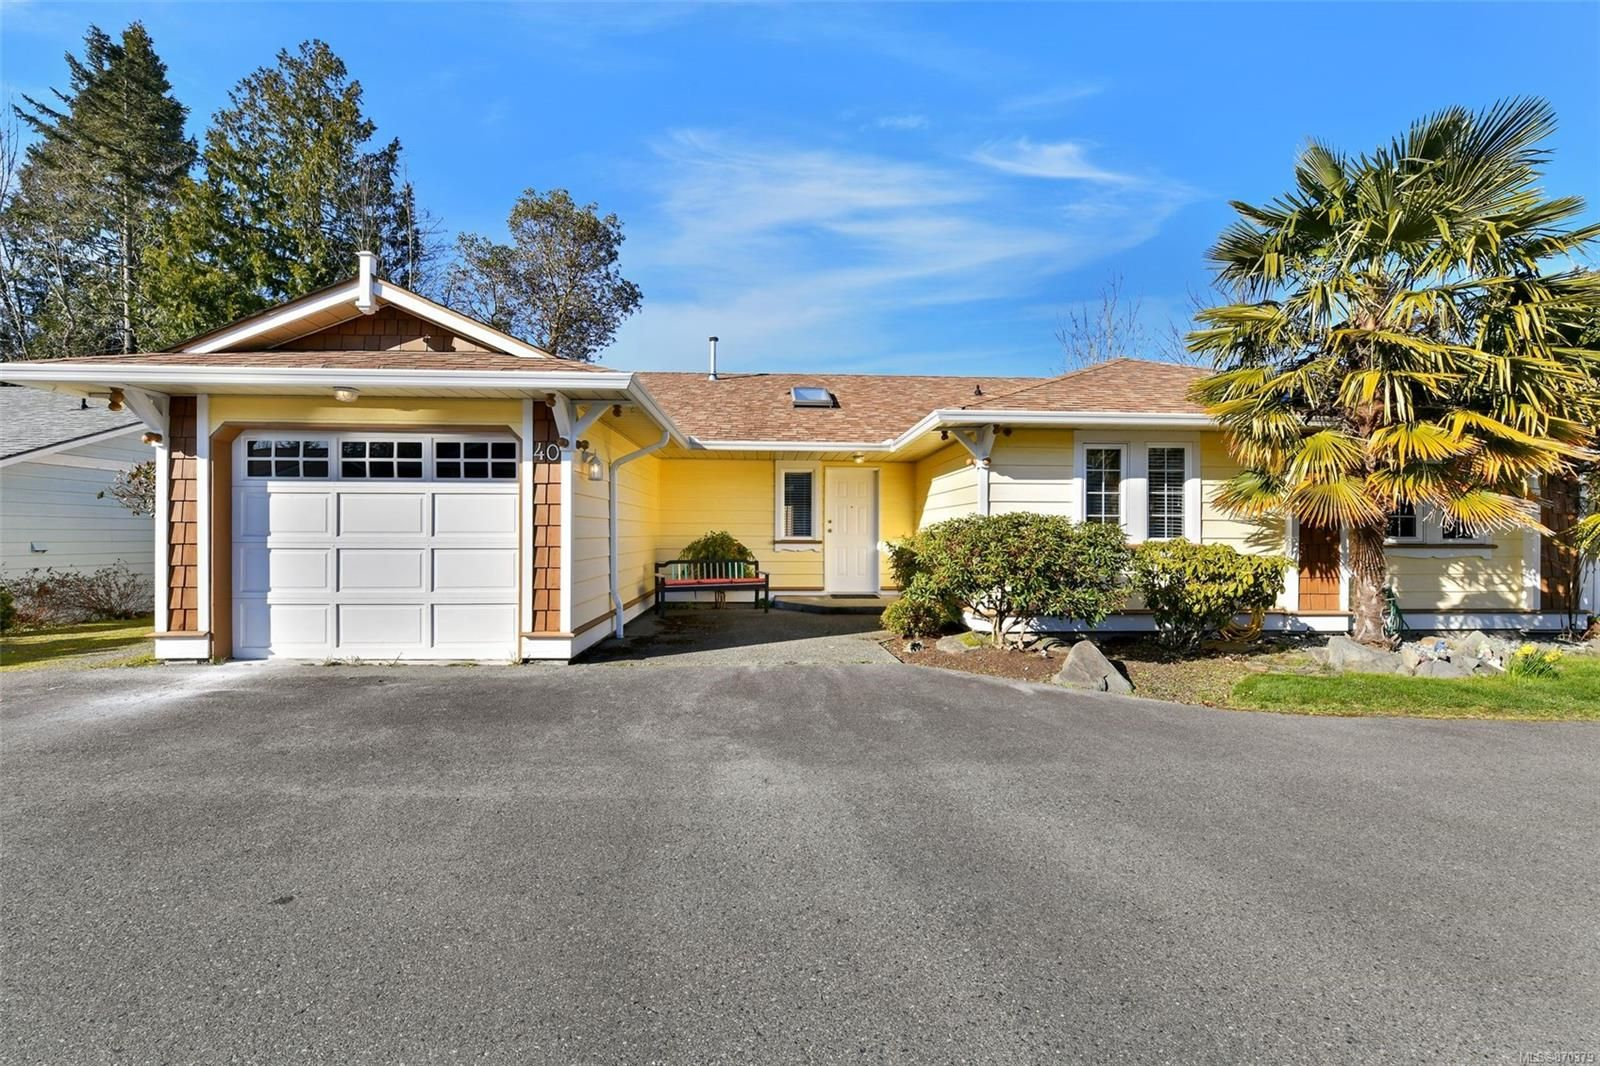 Main Photo: 40 9933 Chemainus Rd in : Du Chemainus Row/Townhouse for sale (Duncan)  : MLS®# 870379